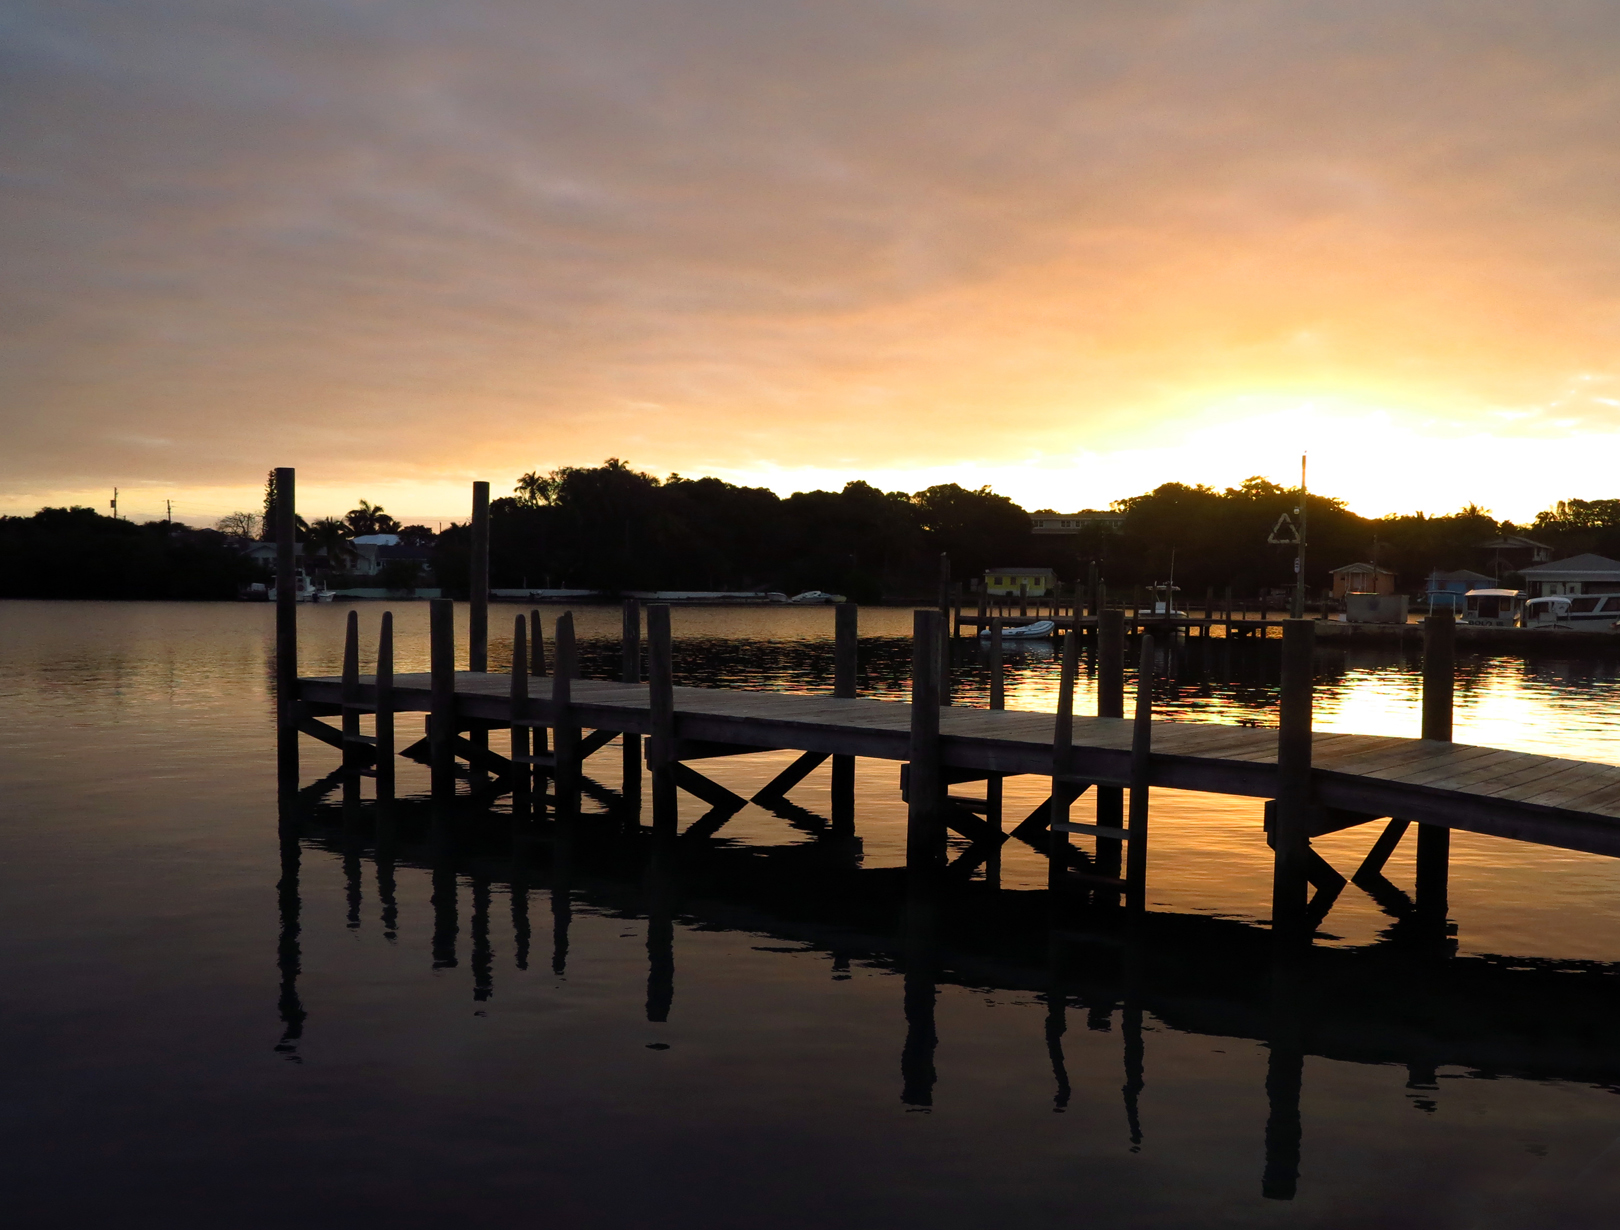 Sunrise in the harbour - Green Turtle Cay, Abaco, Bahamas